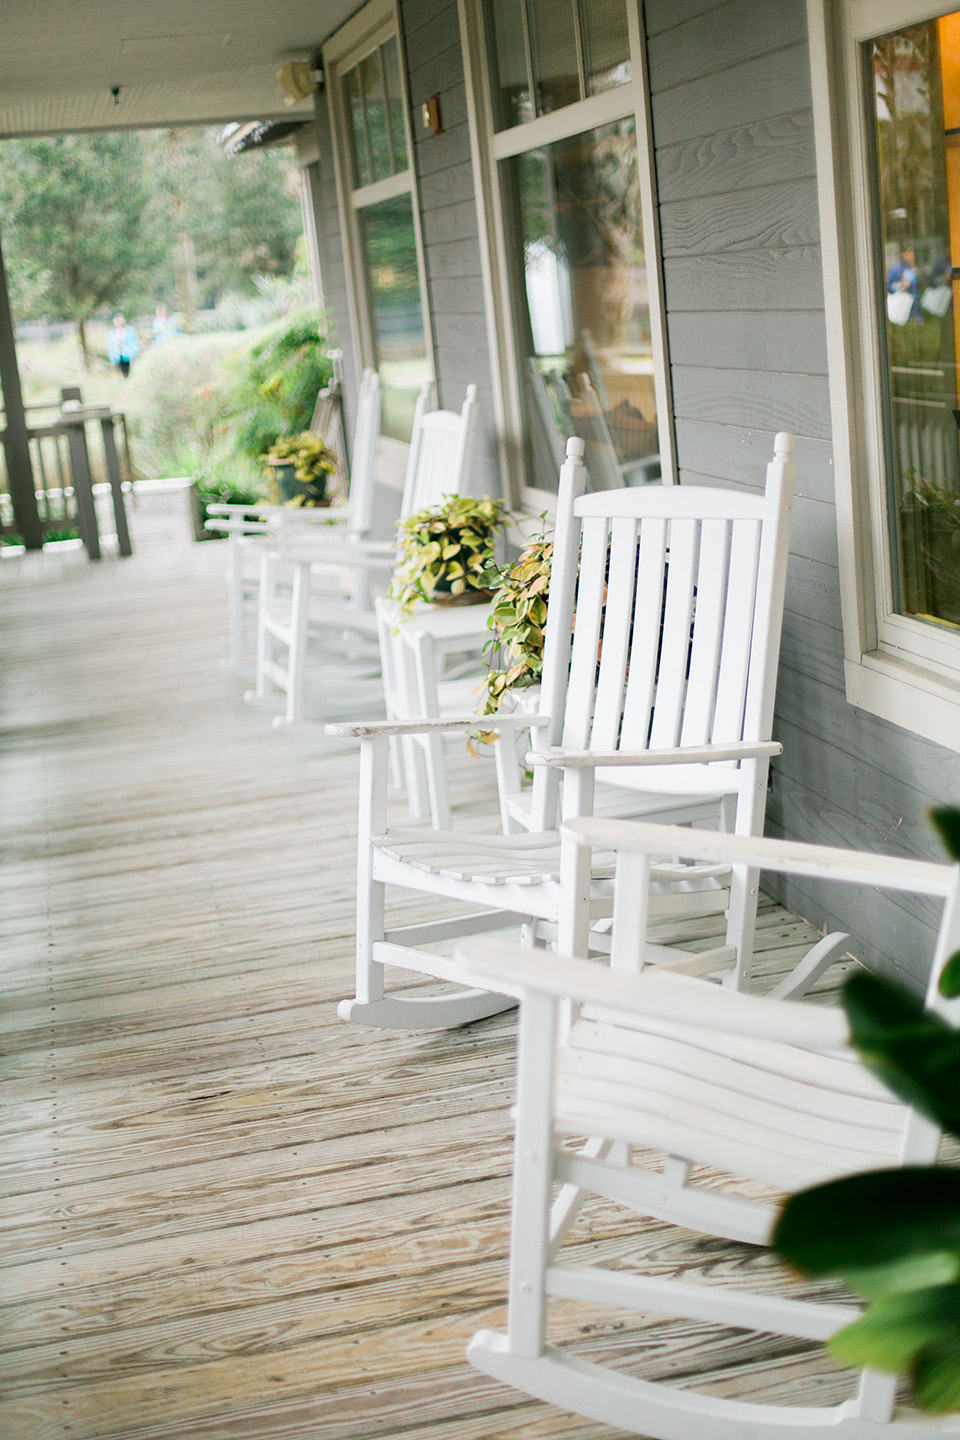 Picture of the Spa Boutique rocking chairs on the Omni Amelia Island Plantation Resort.